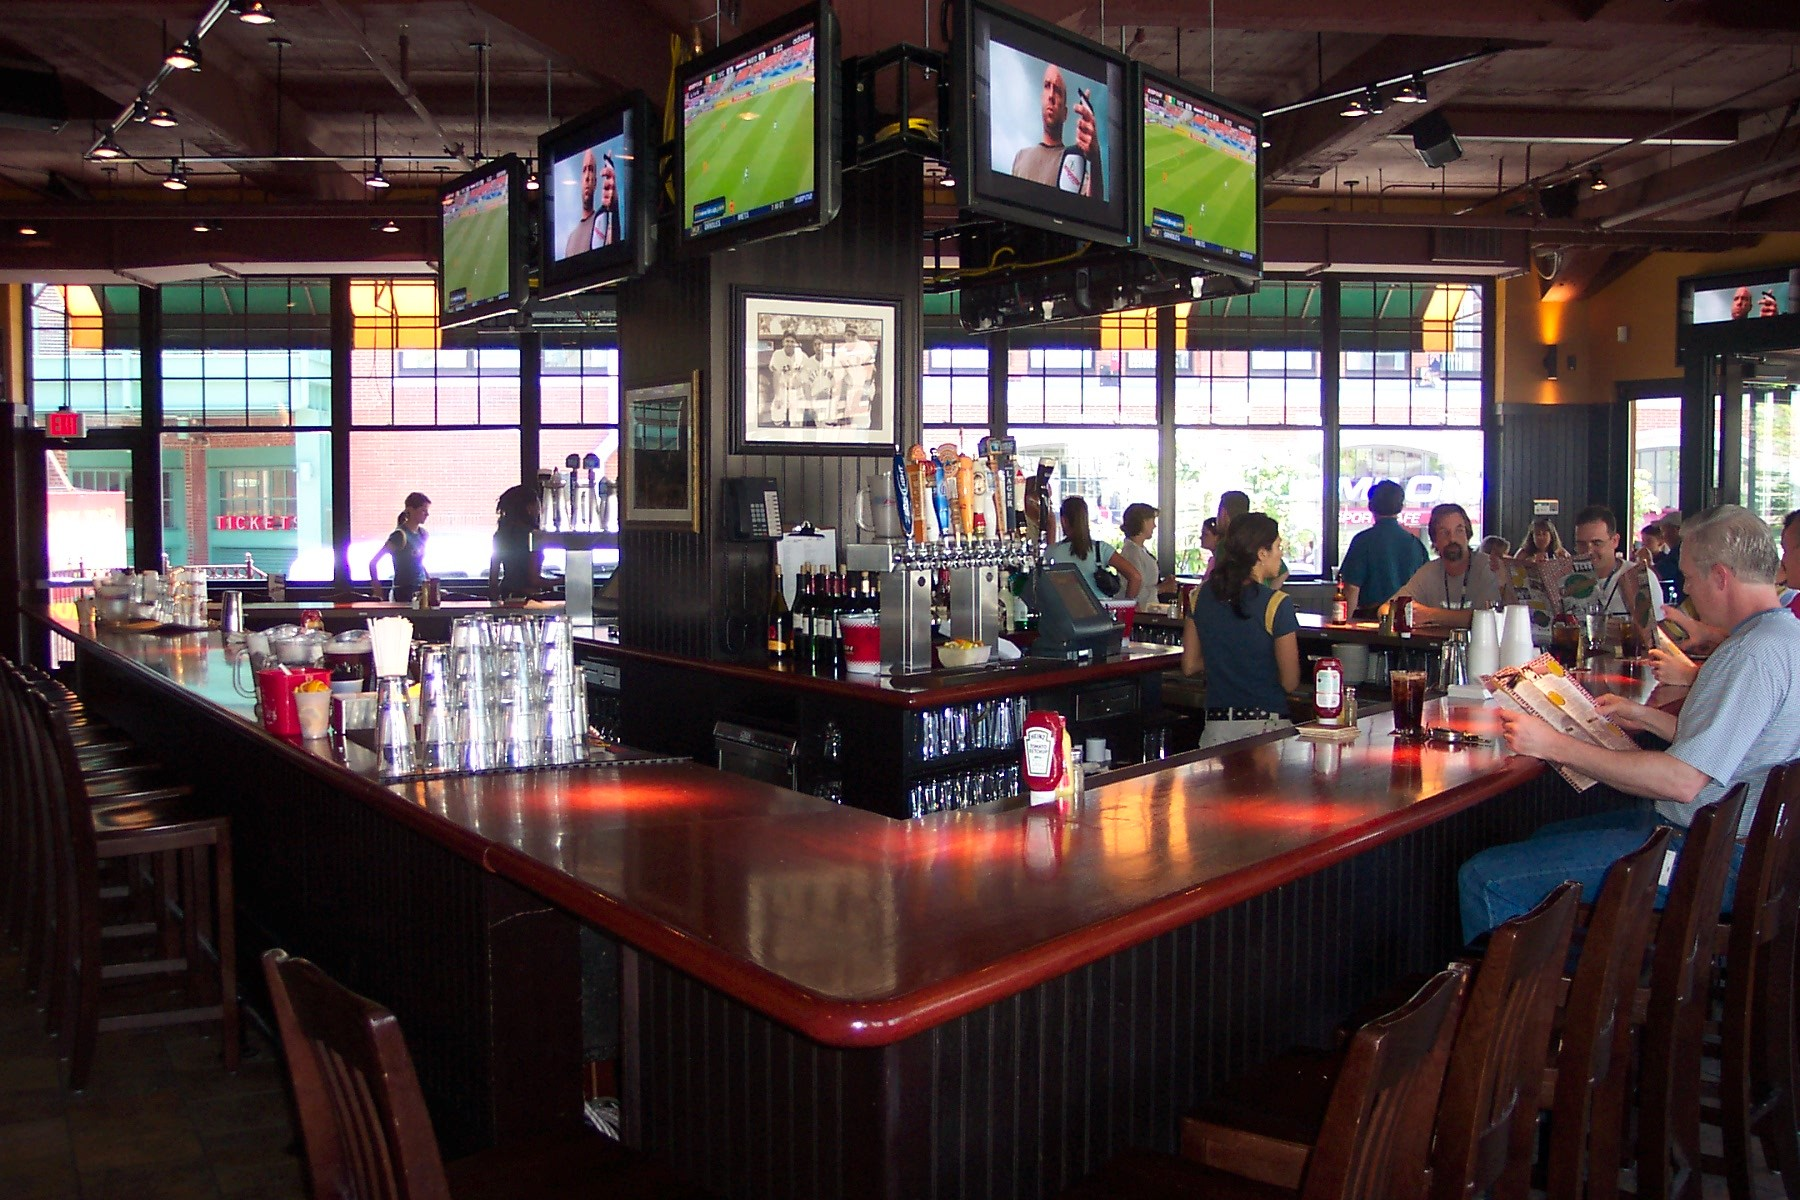 Best Sports Bars in Boston 2020: 13 Spots with Big Screens ...